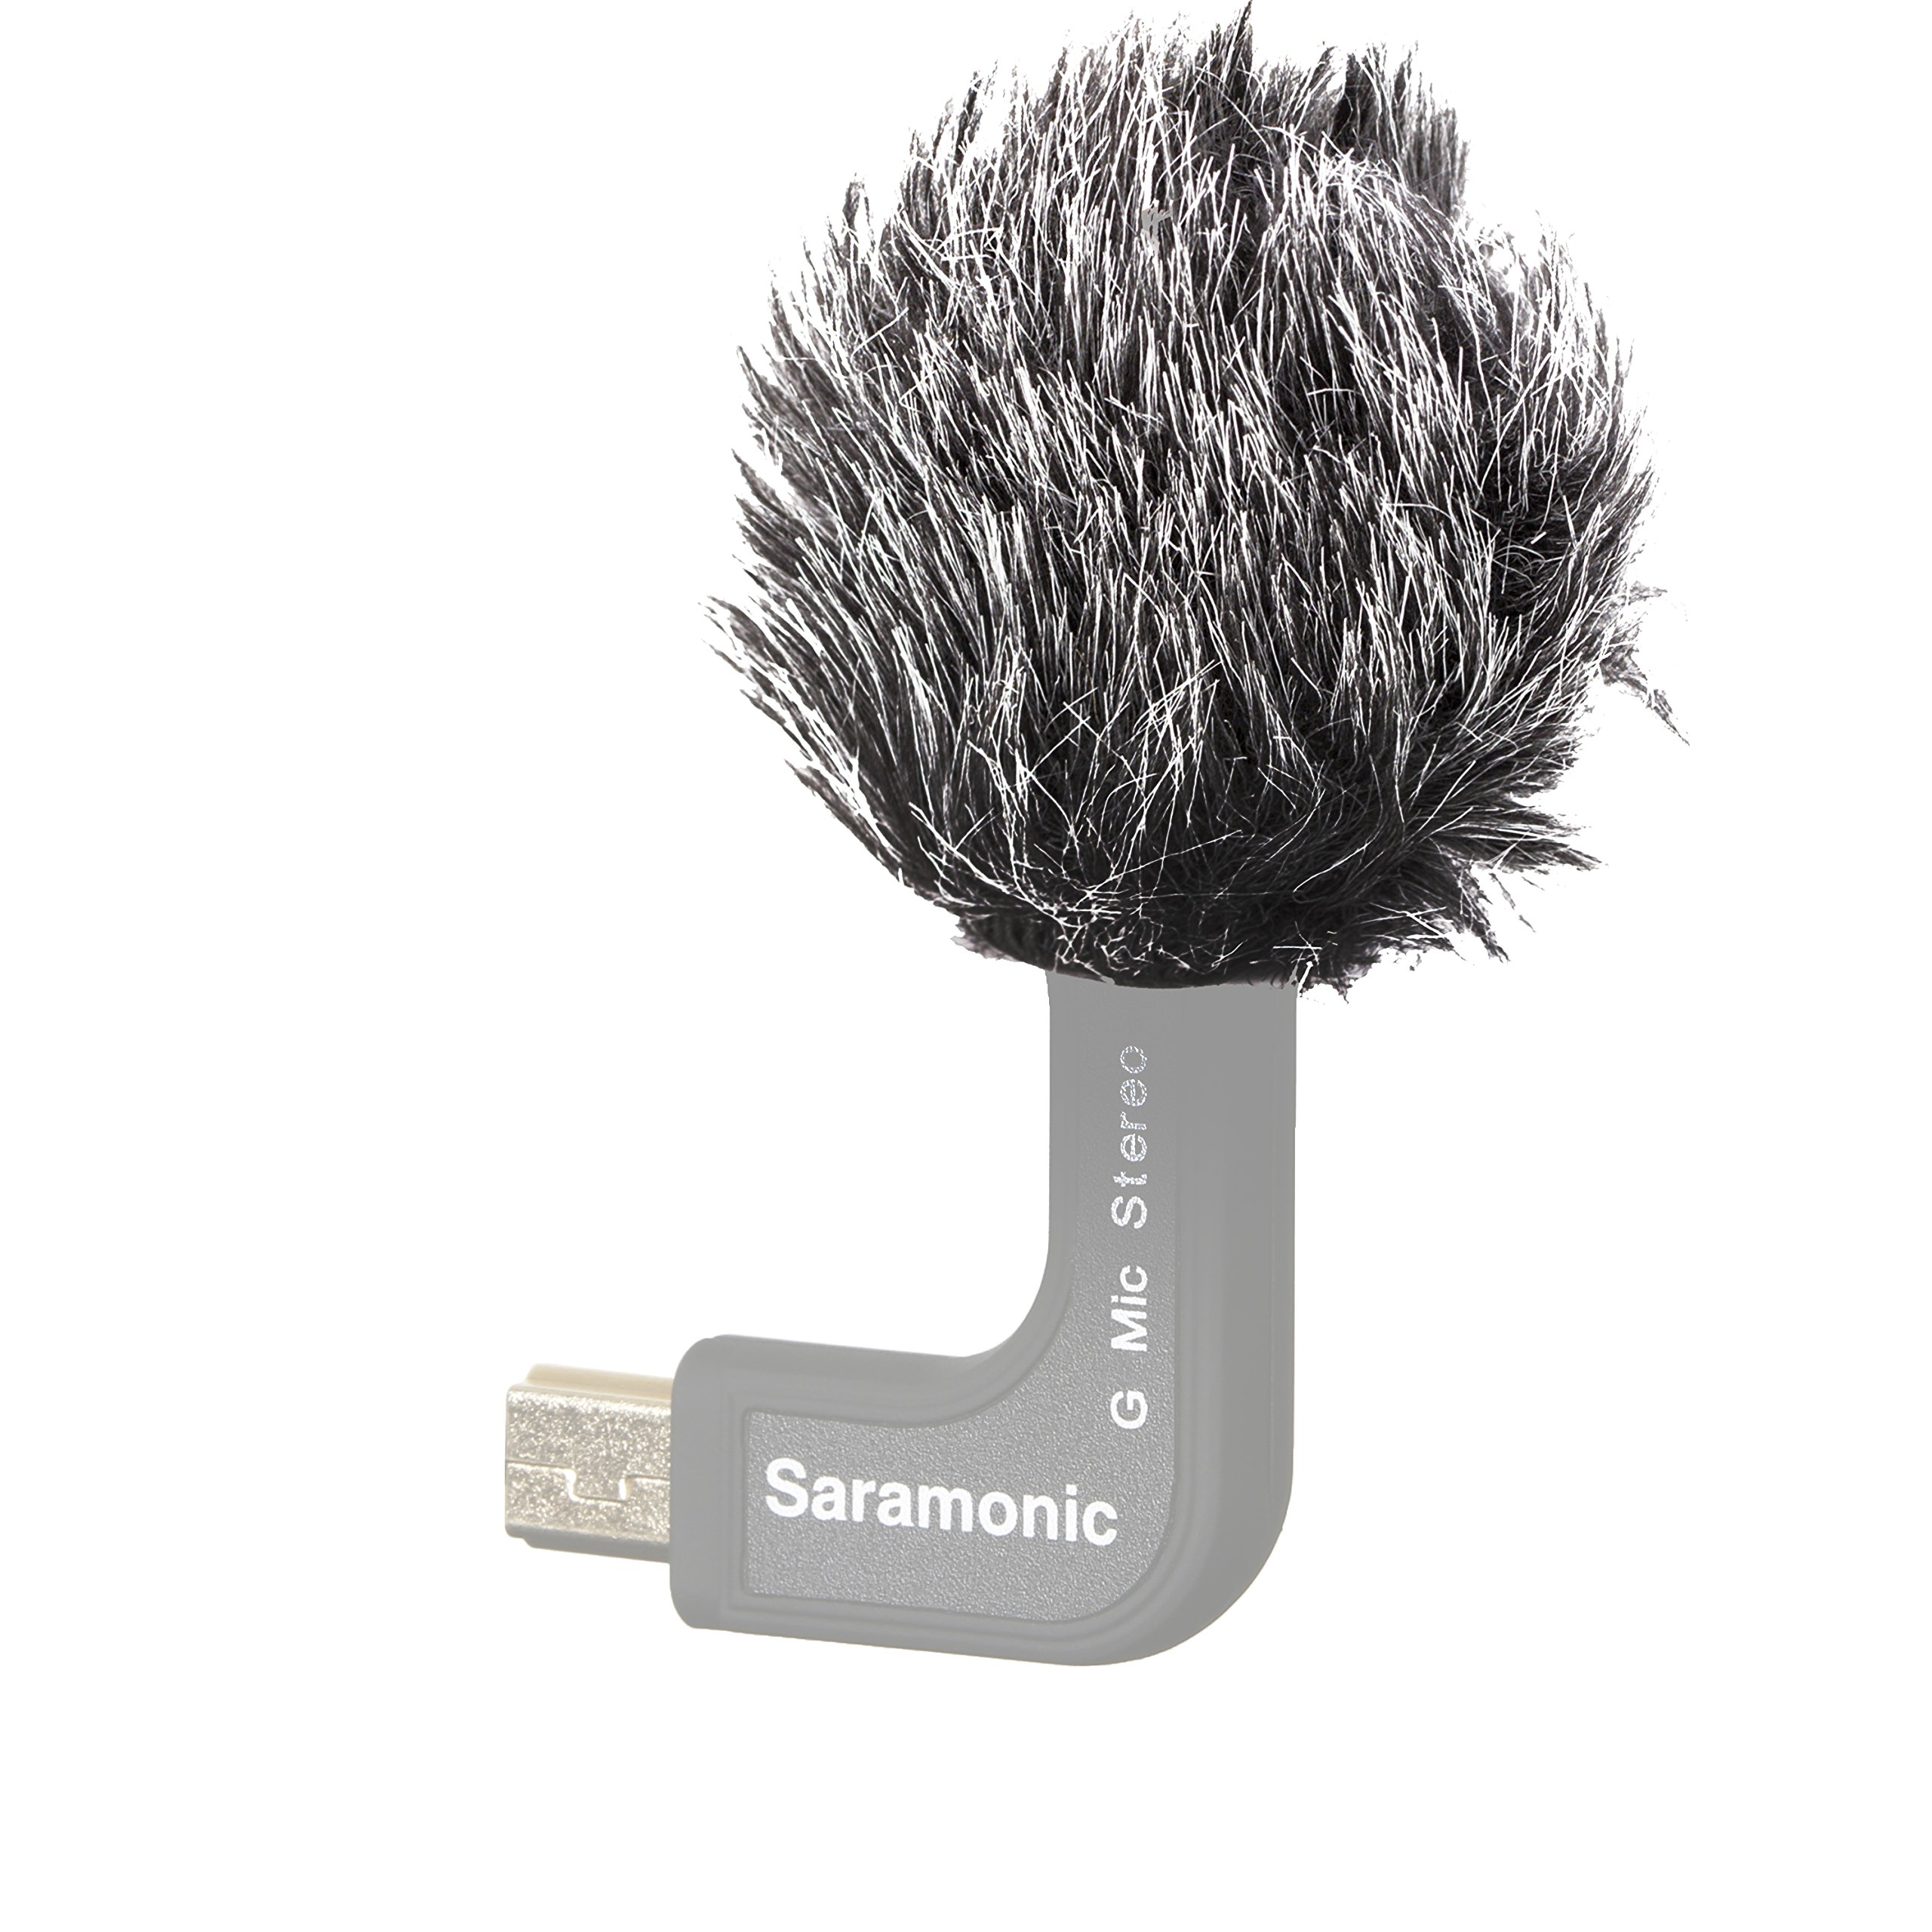 Saramonic Furry Outdoor Microphone Windscreen for the Saramonic G-Mic Stereo Ball Microphone for GoPro